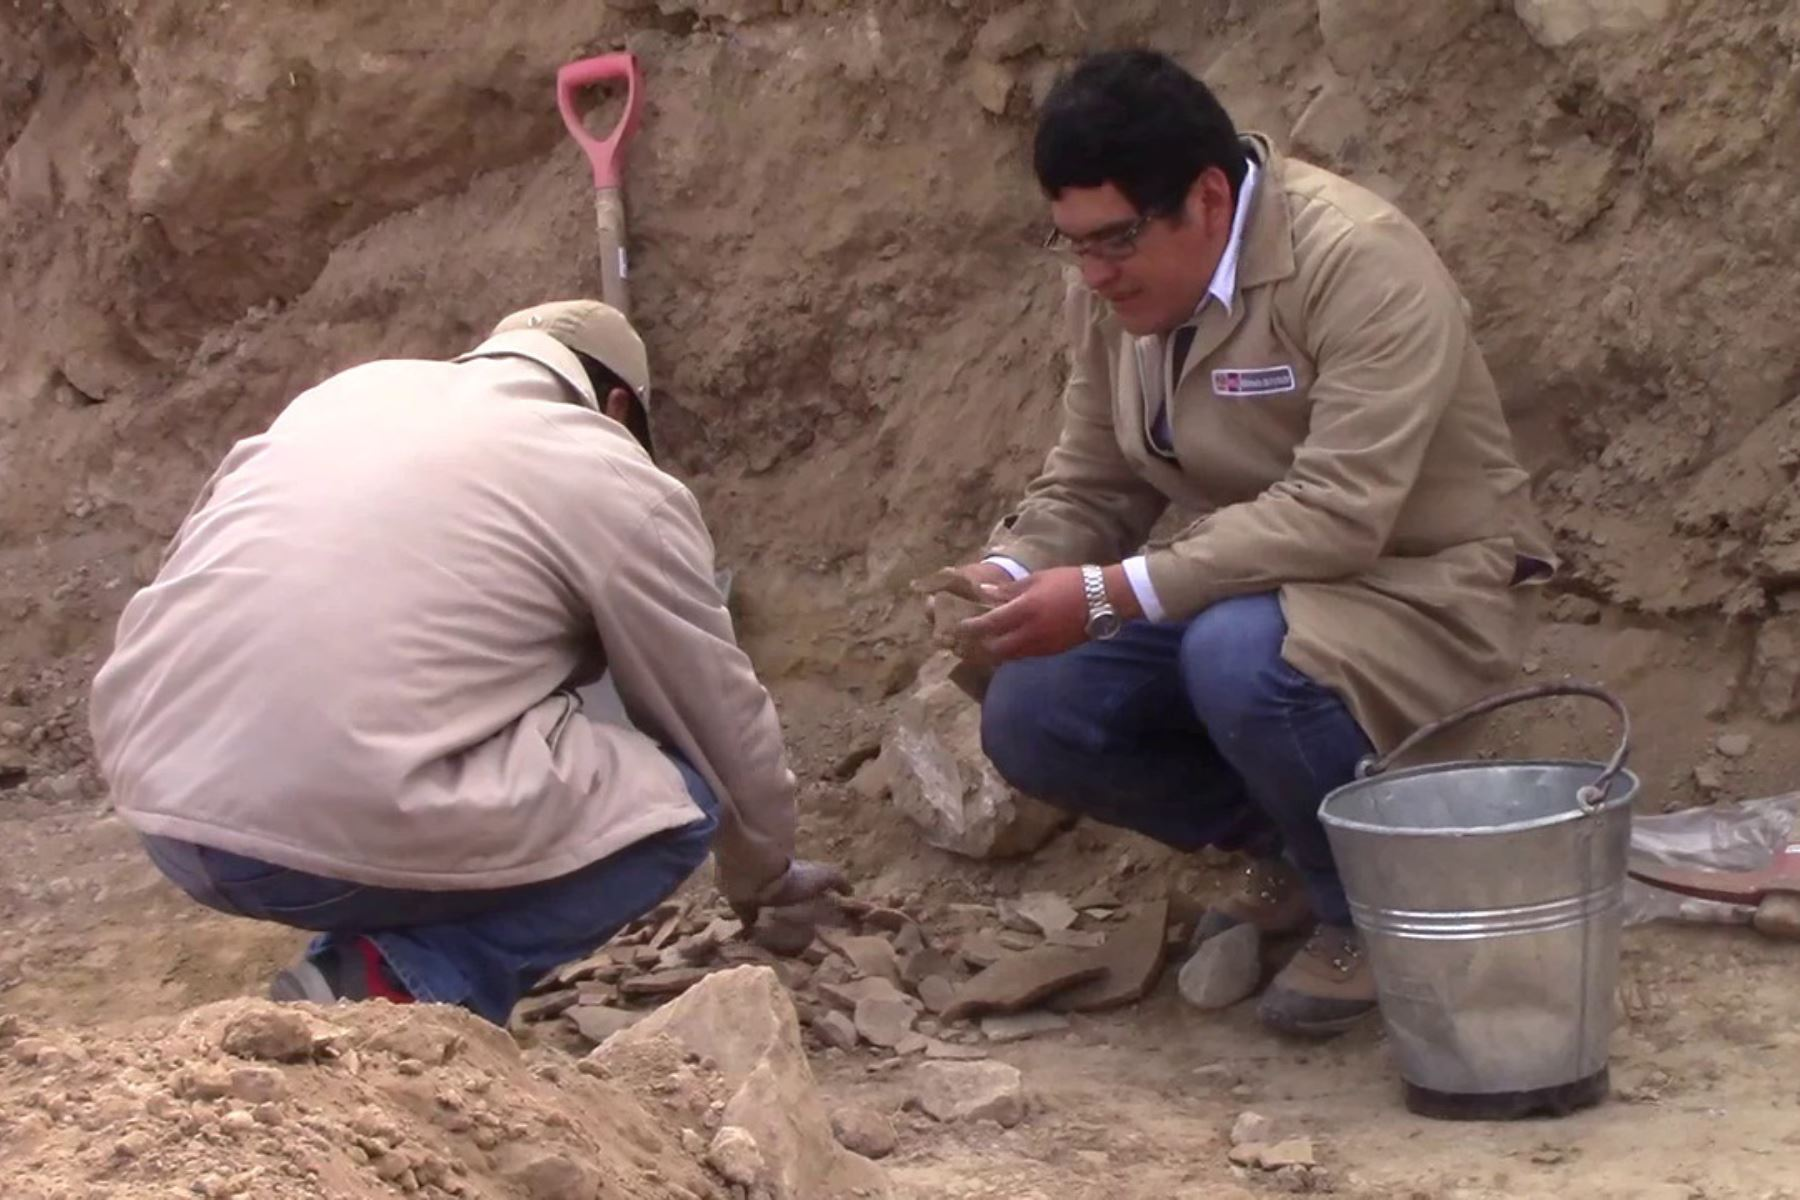 Peru: Archaeological remains found near Wariwillka site in Junin